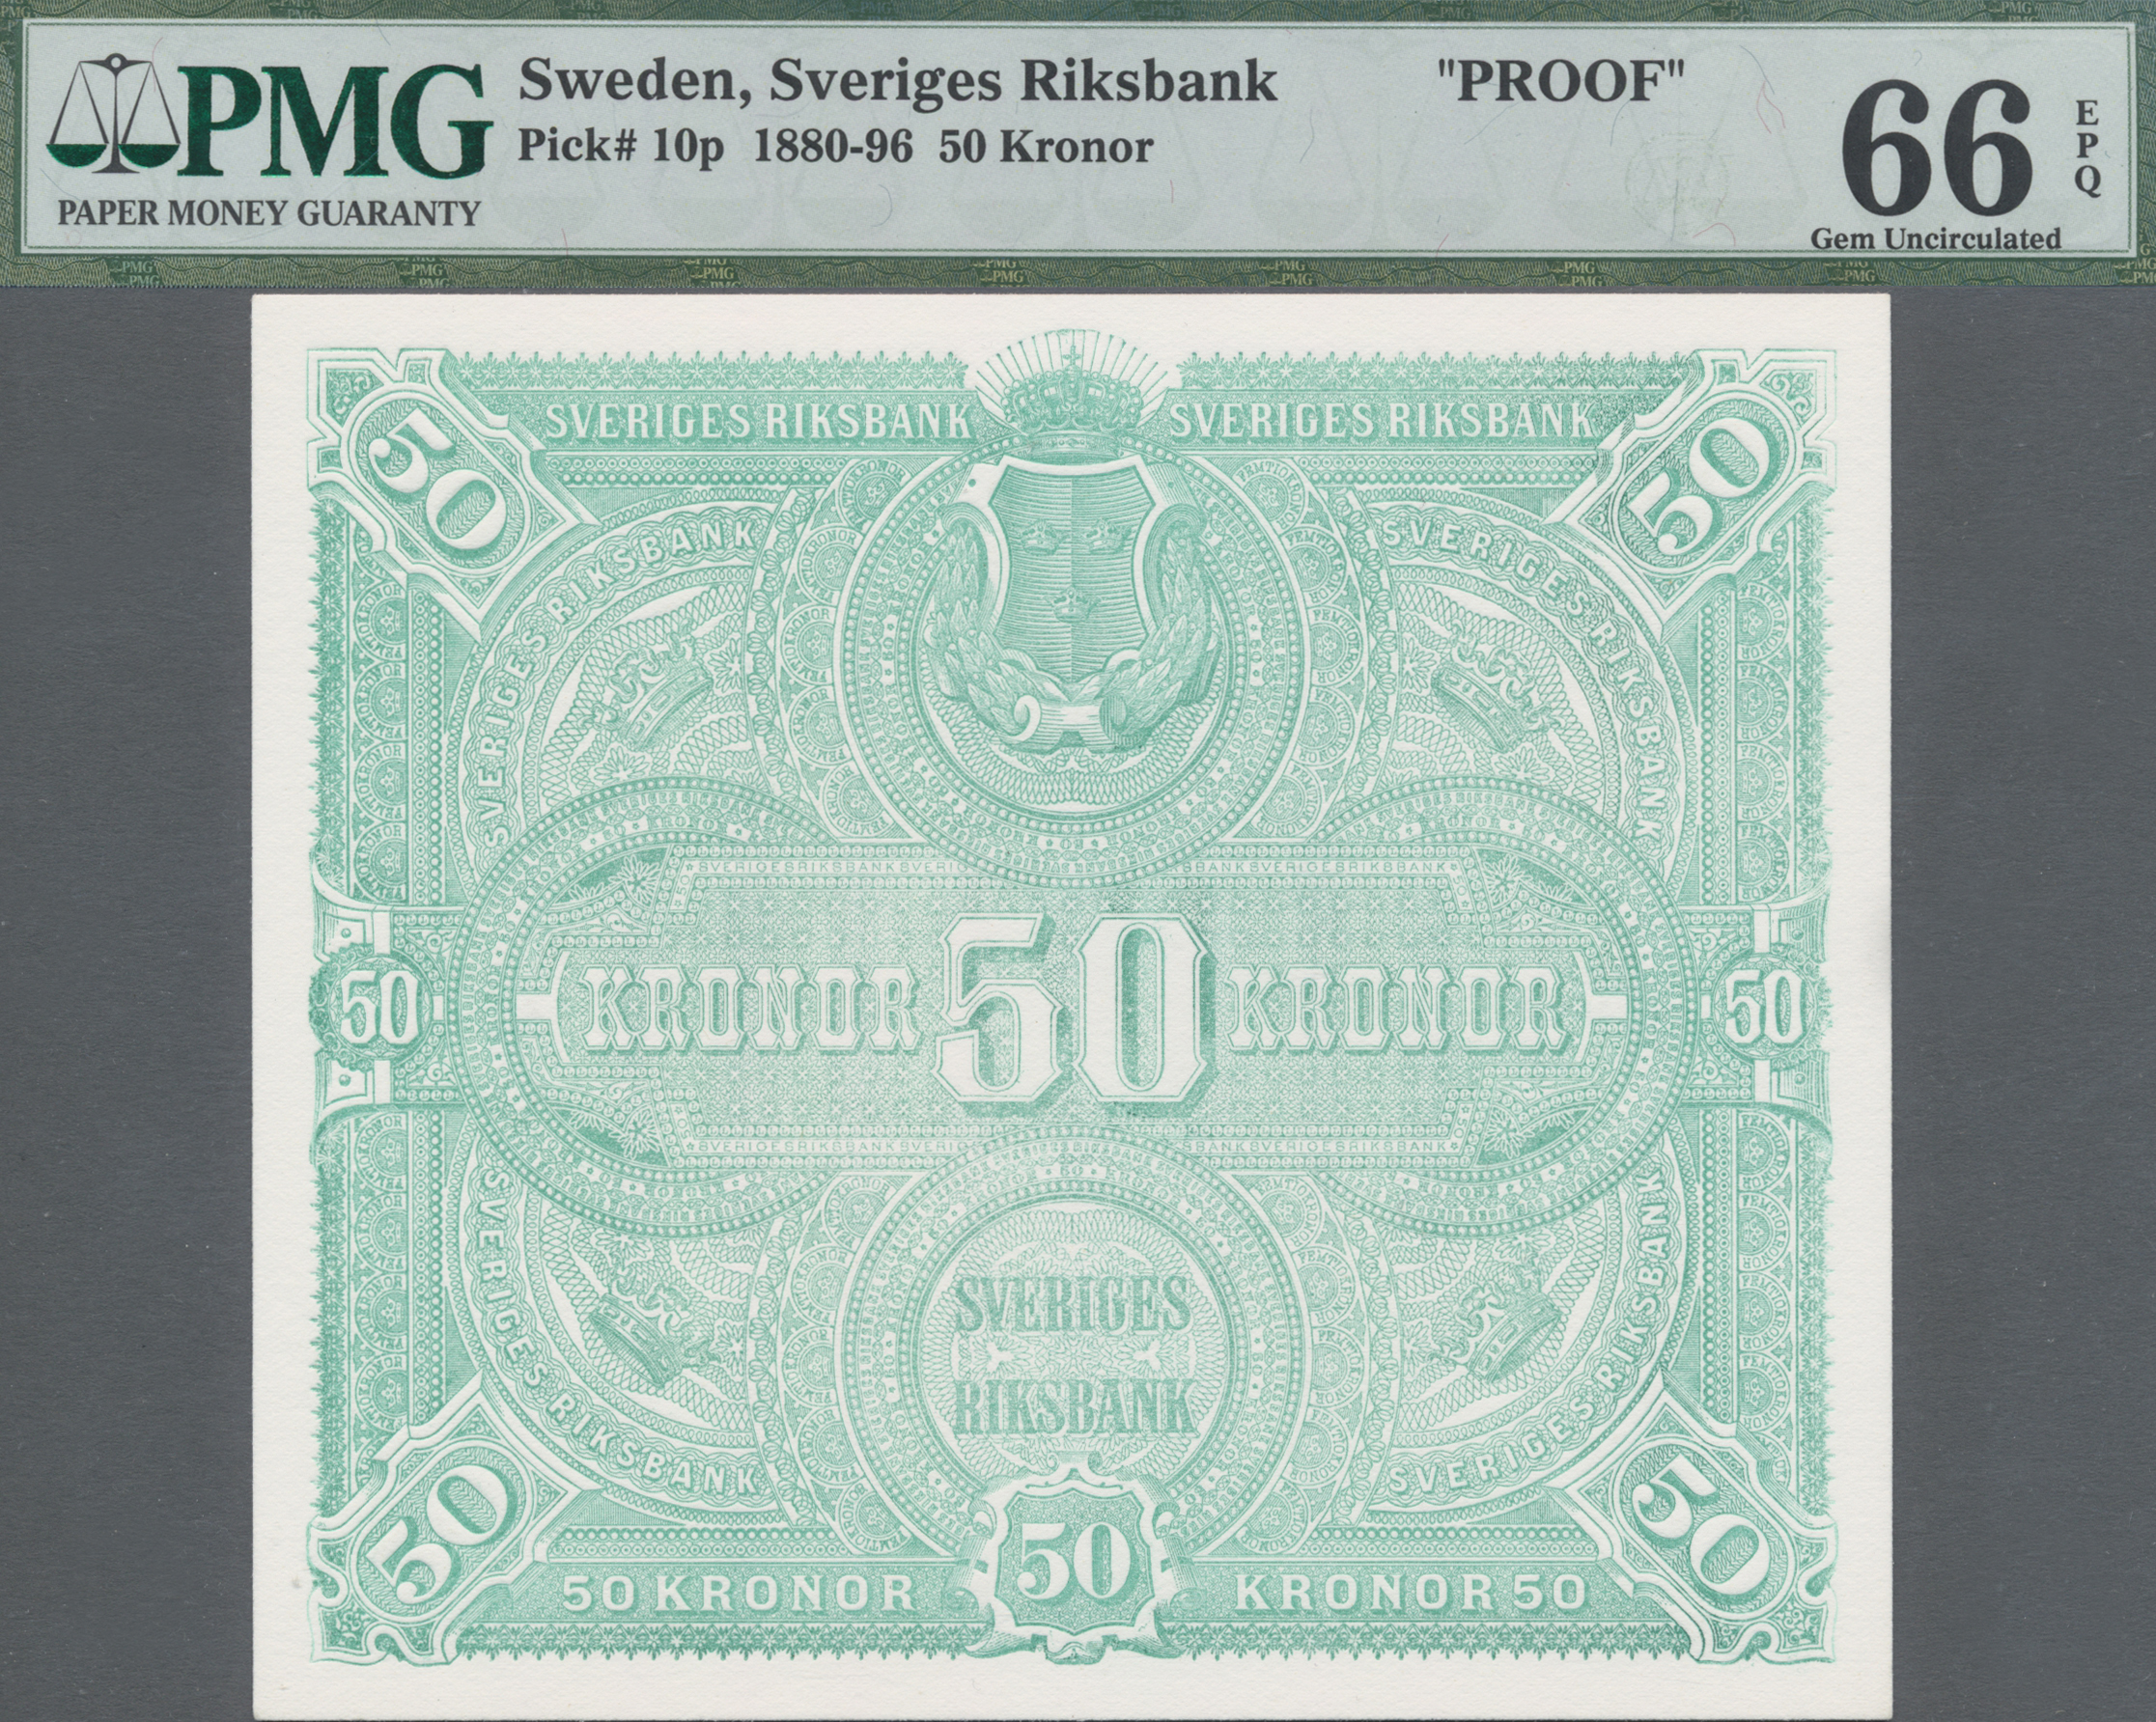 Lot 00859 - Sweden / Schweden | Banknoten  -  Auktionshaus Christoph Gärtner GmbH & Co. KG Sale #48 The Banknotes